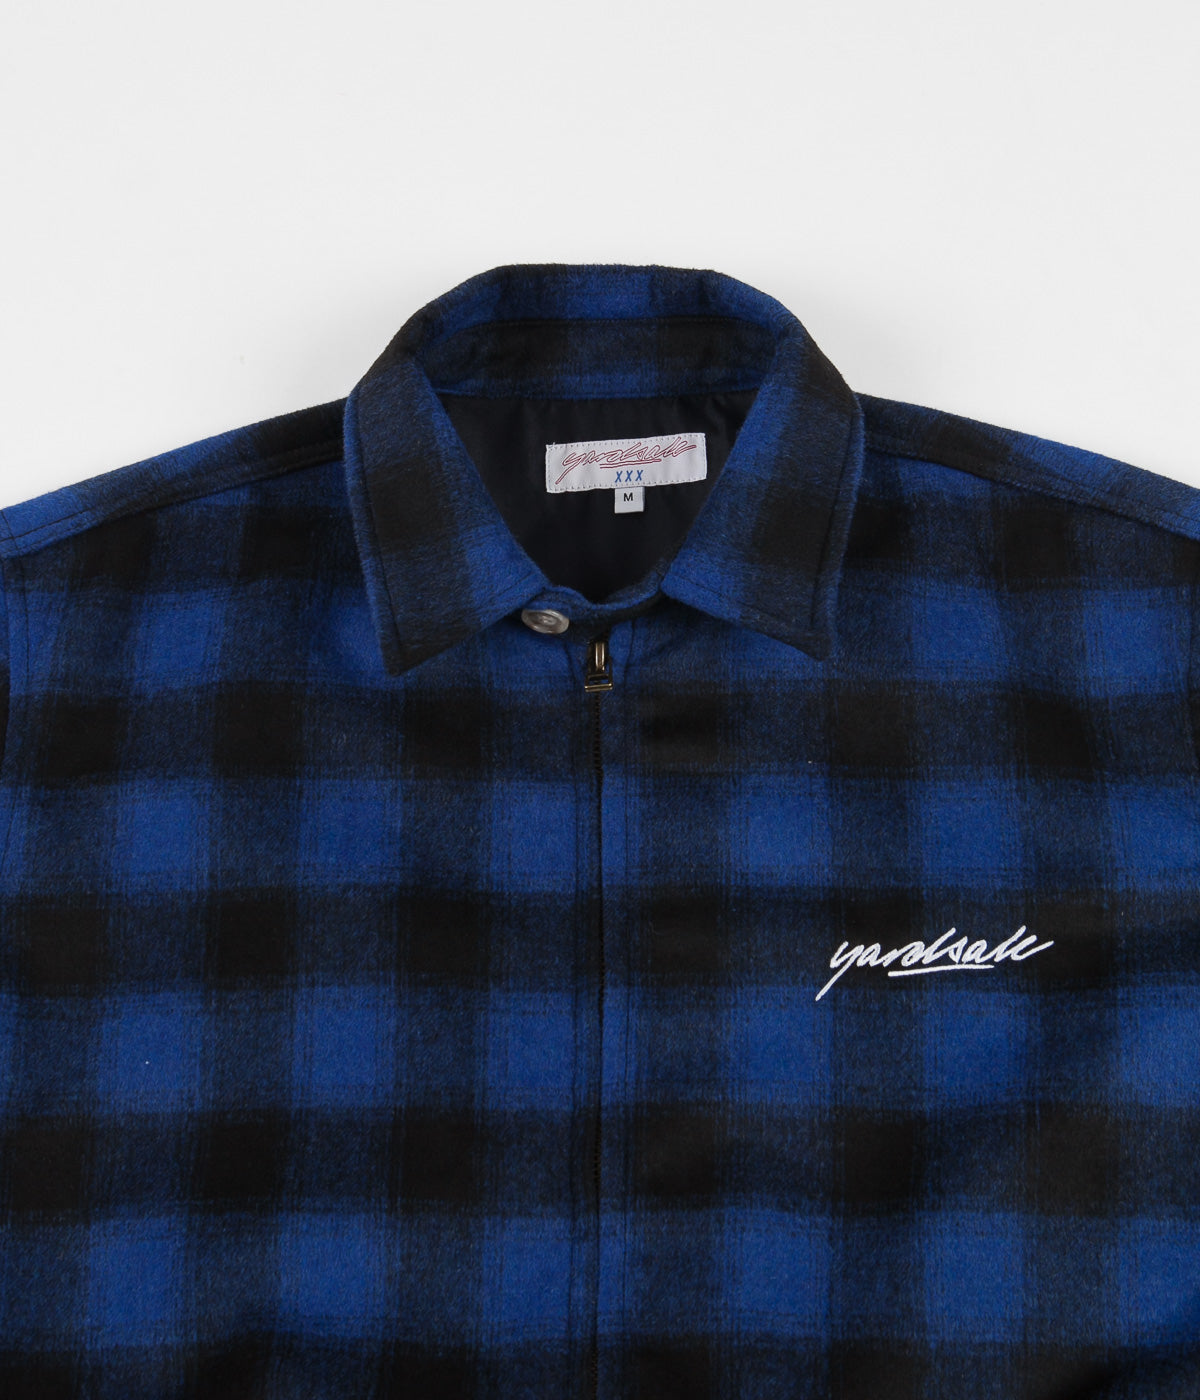 Yardsale Tartan Harrington Jacket - Blue / Black